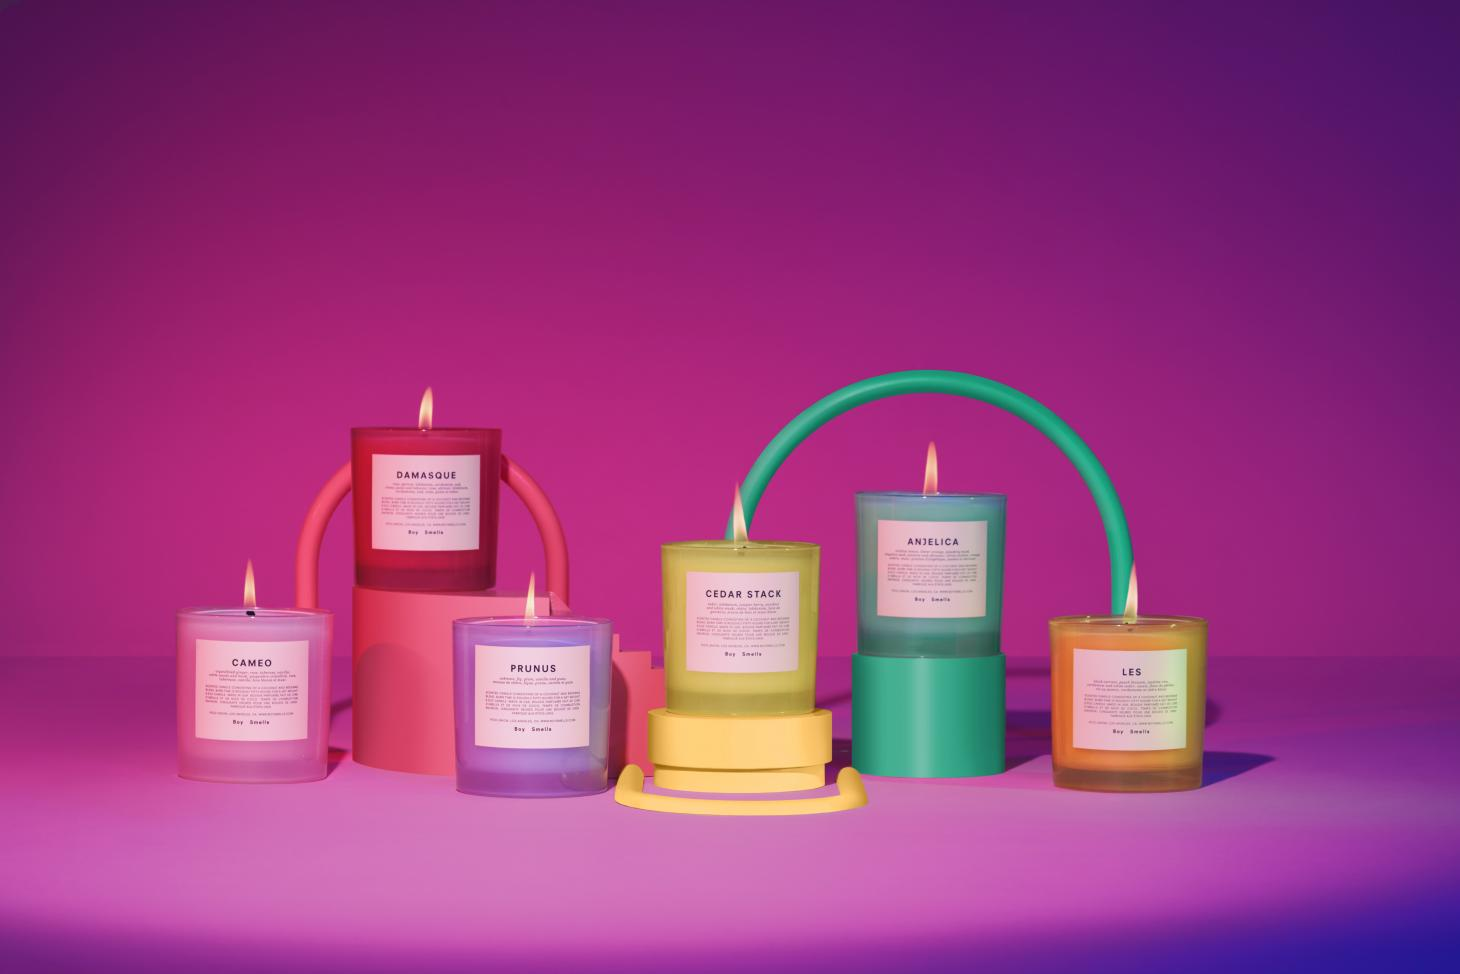 boy smells pride campaign candles